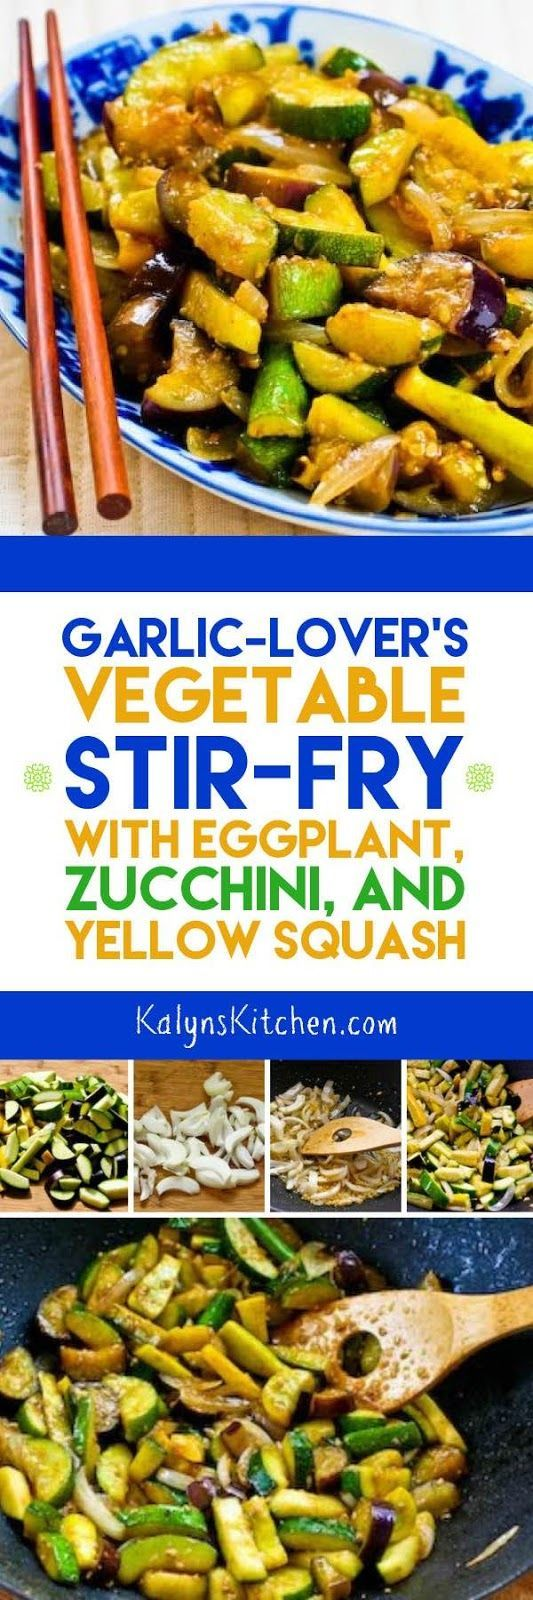 This easy Garlic-Lover's Vegetable Stir Fry with Eggplant, Zucchini, and Yellow Squash is one of the Top Ten Most Popular Low-Carb Zucchini Recipes on Kalyn's Kitchen, and it's the perfect way to use garden veggies! [found on http://KalynsKitchen.com]